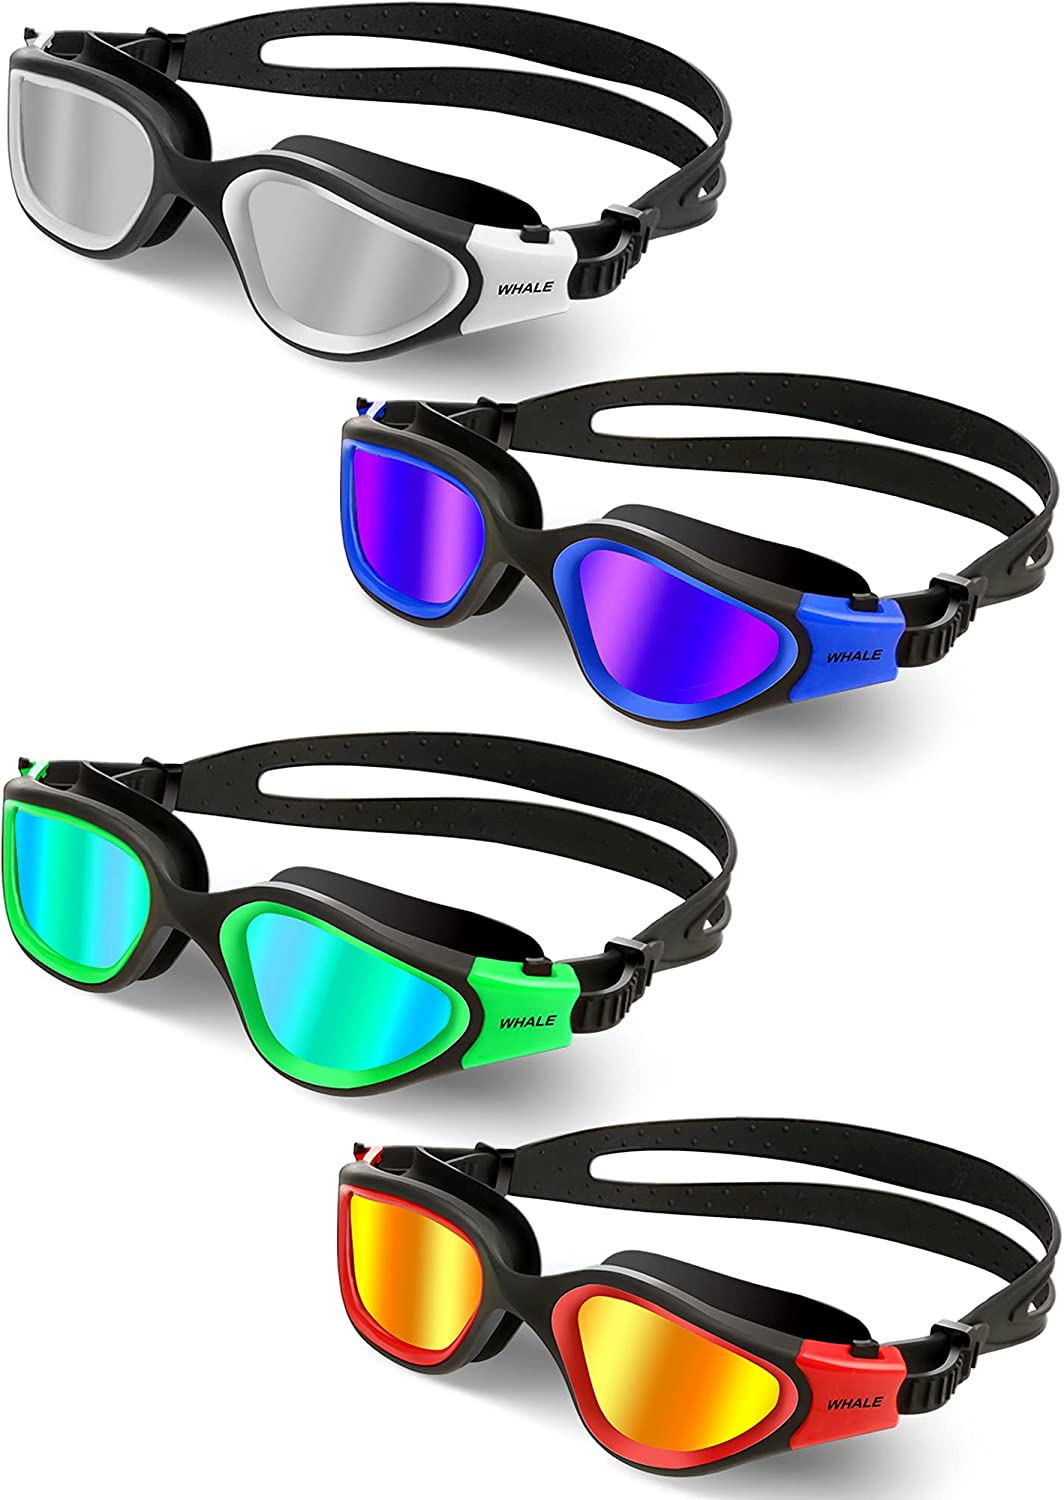 store 4 Pairs Polarized Japan's largest assortment Swimming Goggles No Leaking Anti-Fog Protec UV